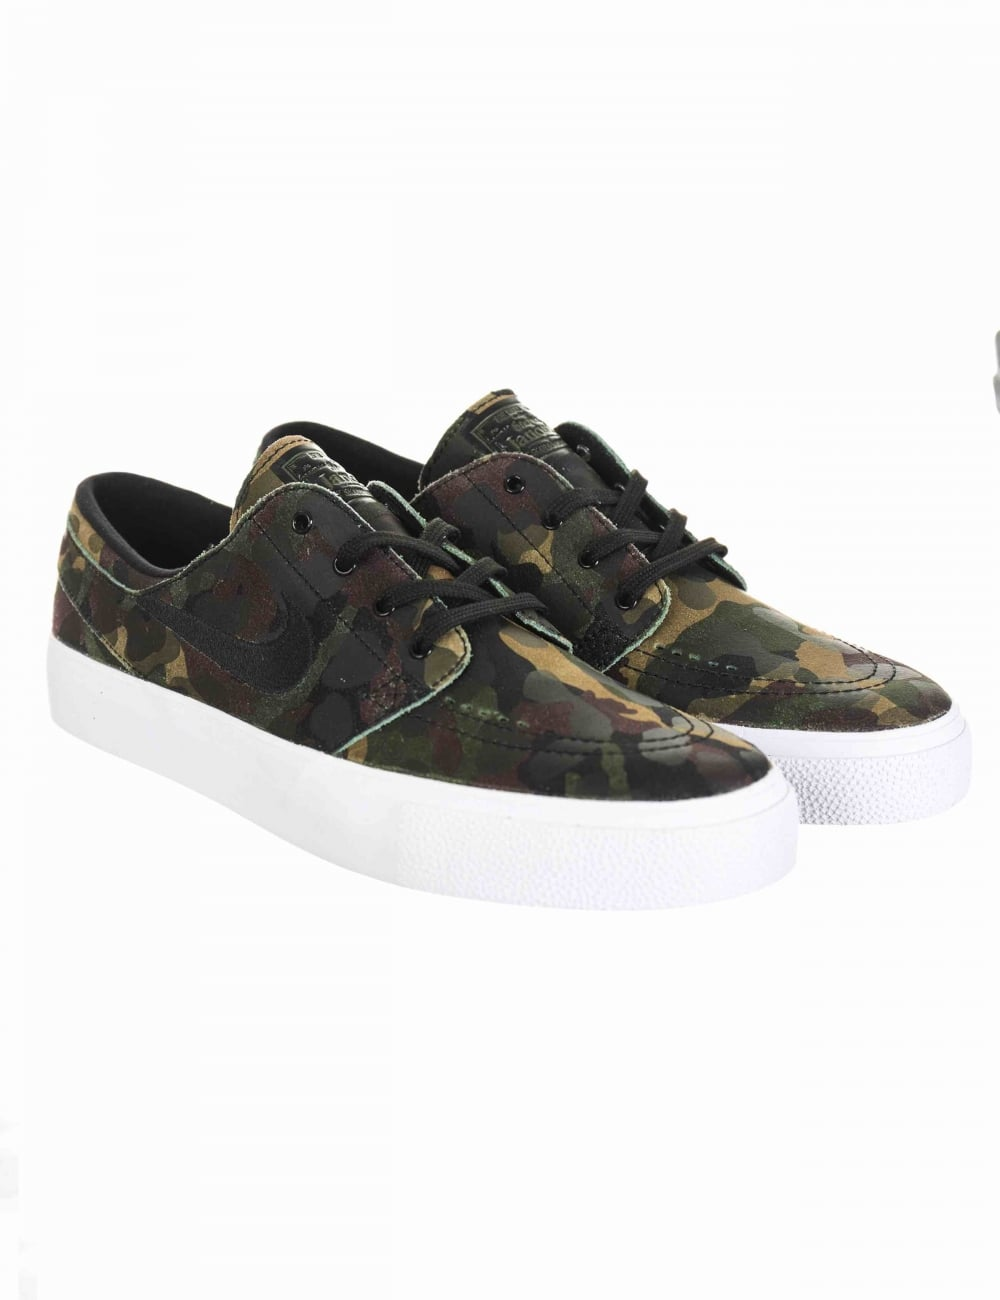 80284f9f0d21 Nike SB Stefan Janoski HT Shoes - White Black (Camo Pack) - Footwear ...